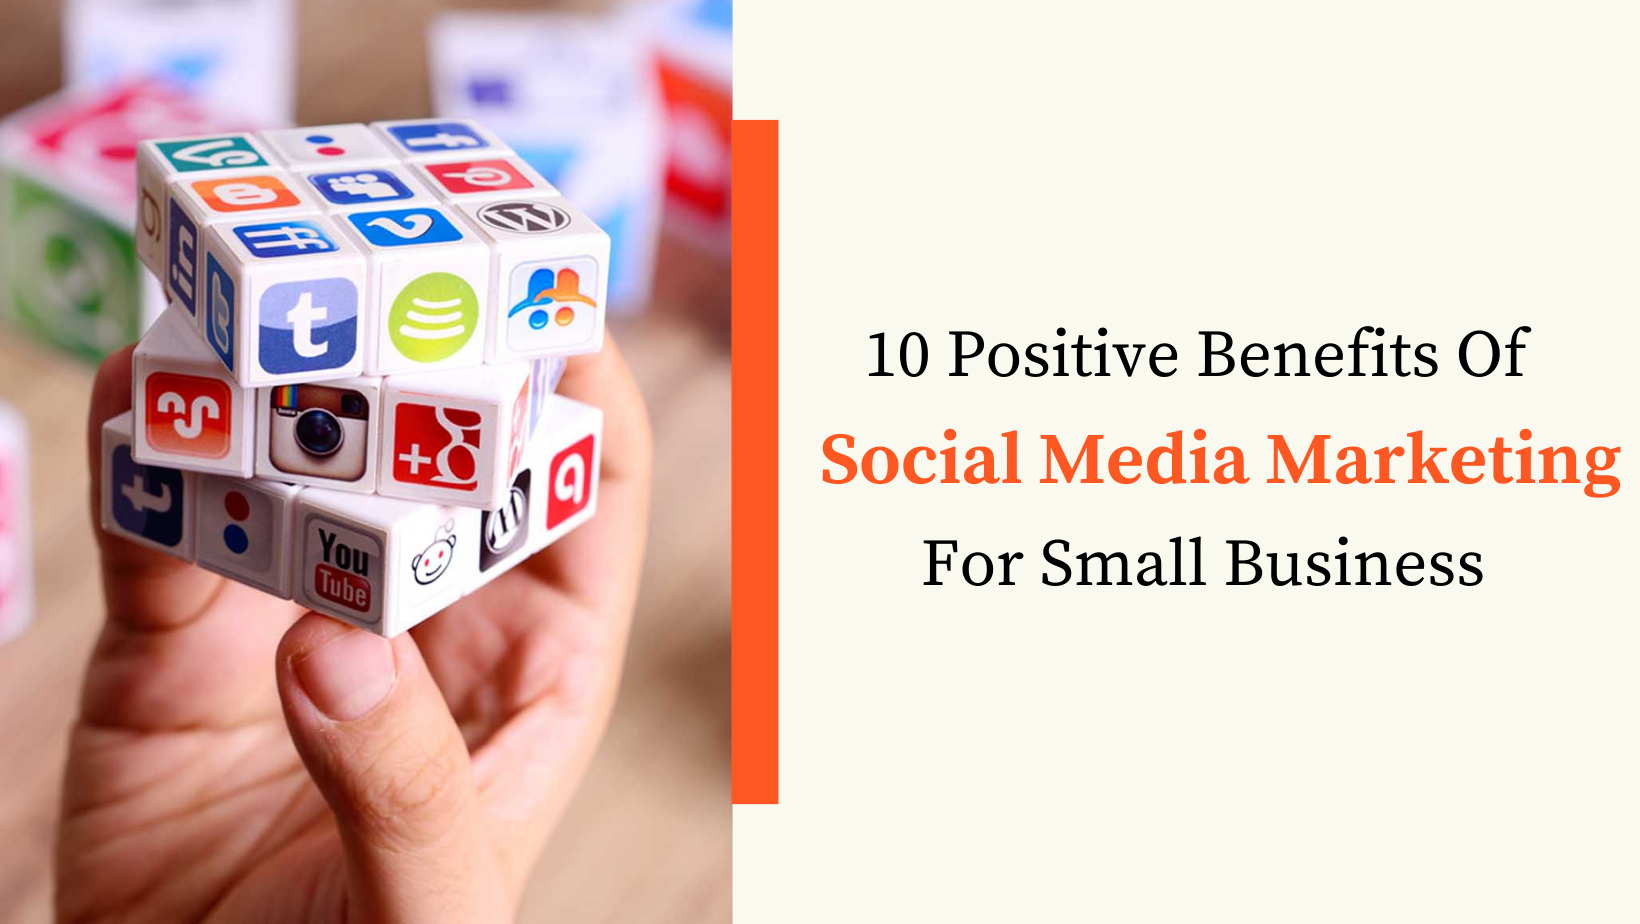 10 Positive Benefits Of Social Media For Small Business